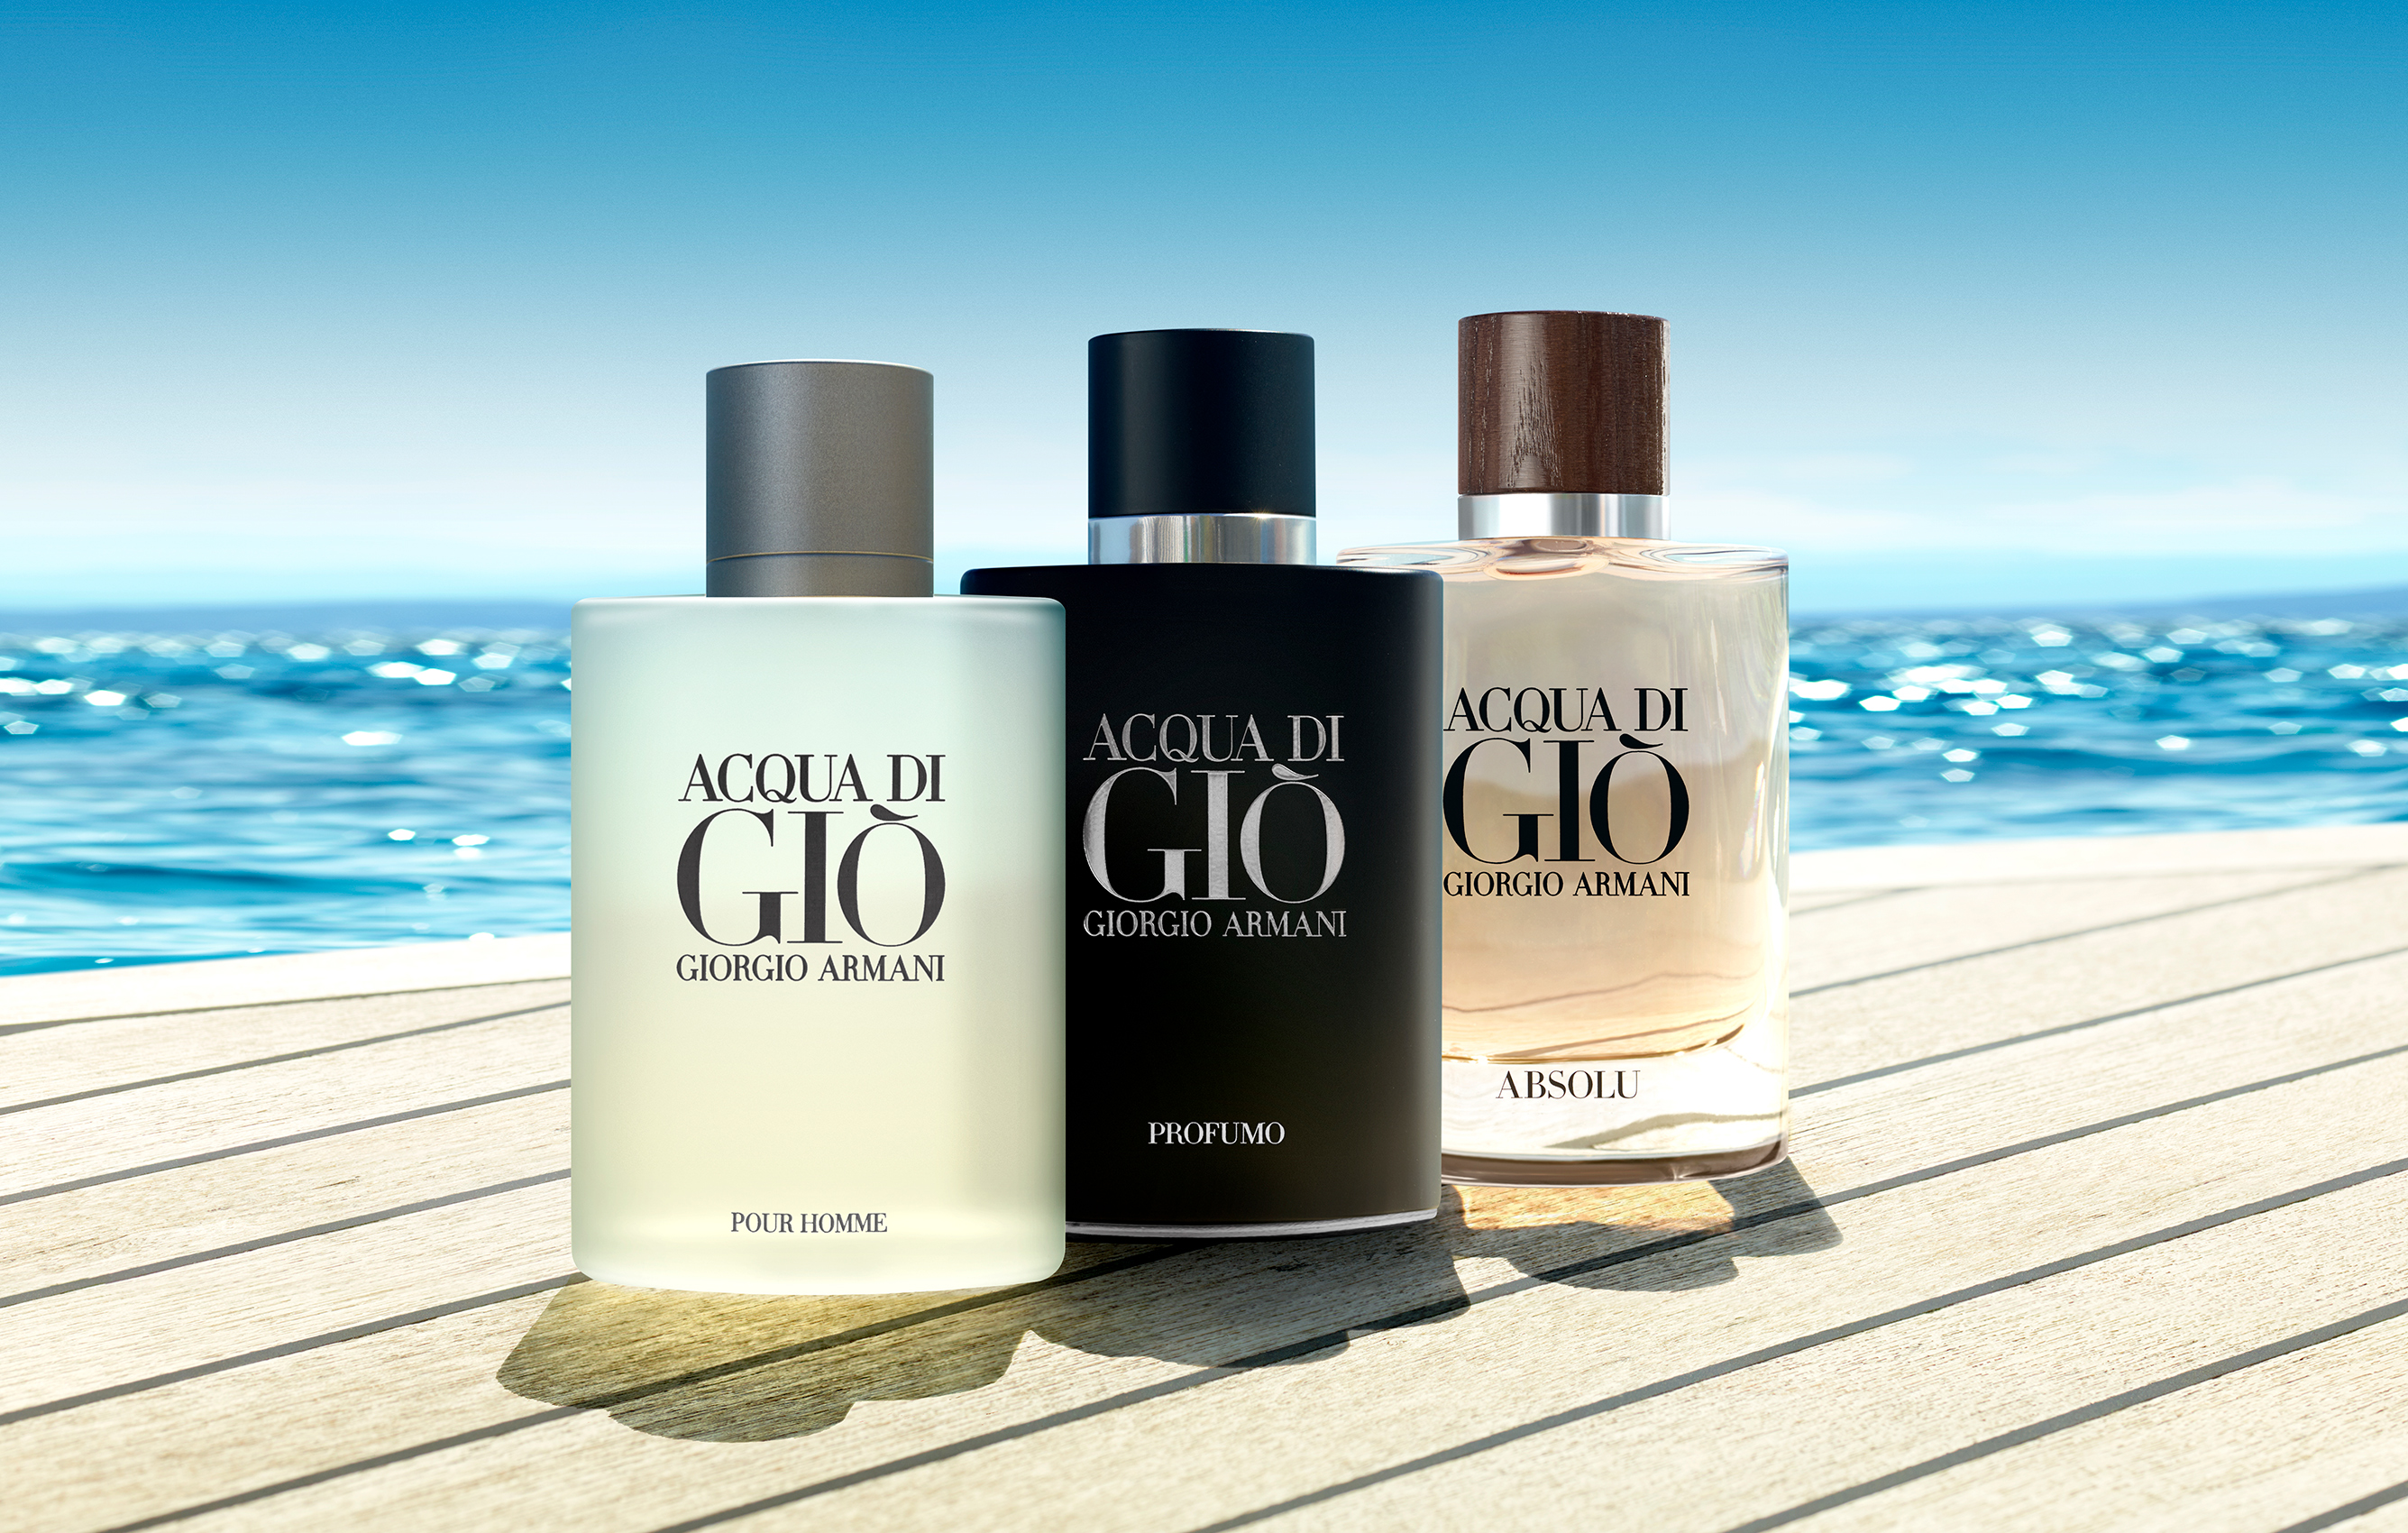 Armani ACQUA DI GIO GROUP